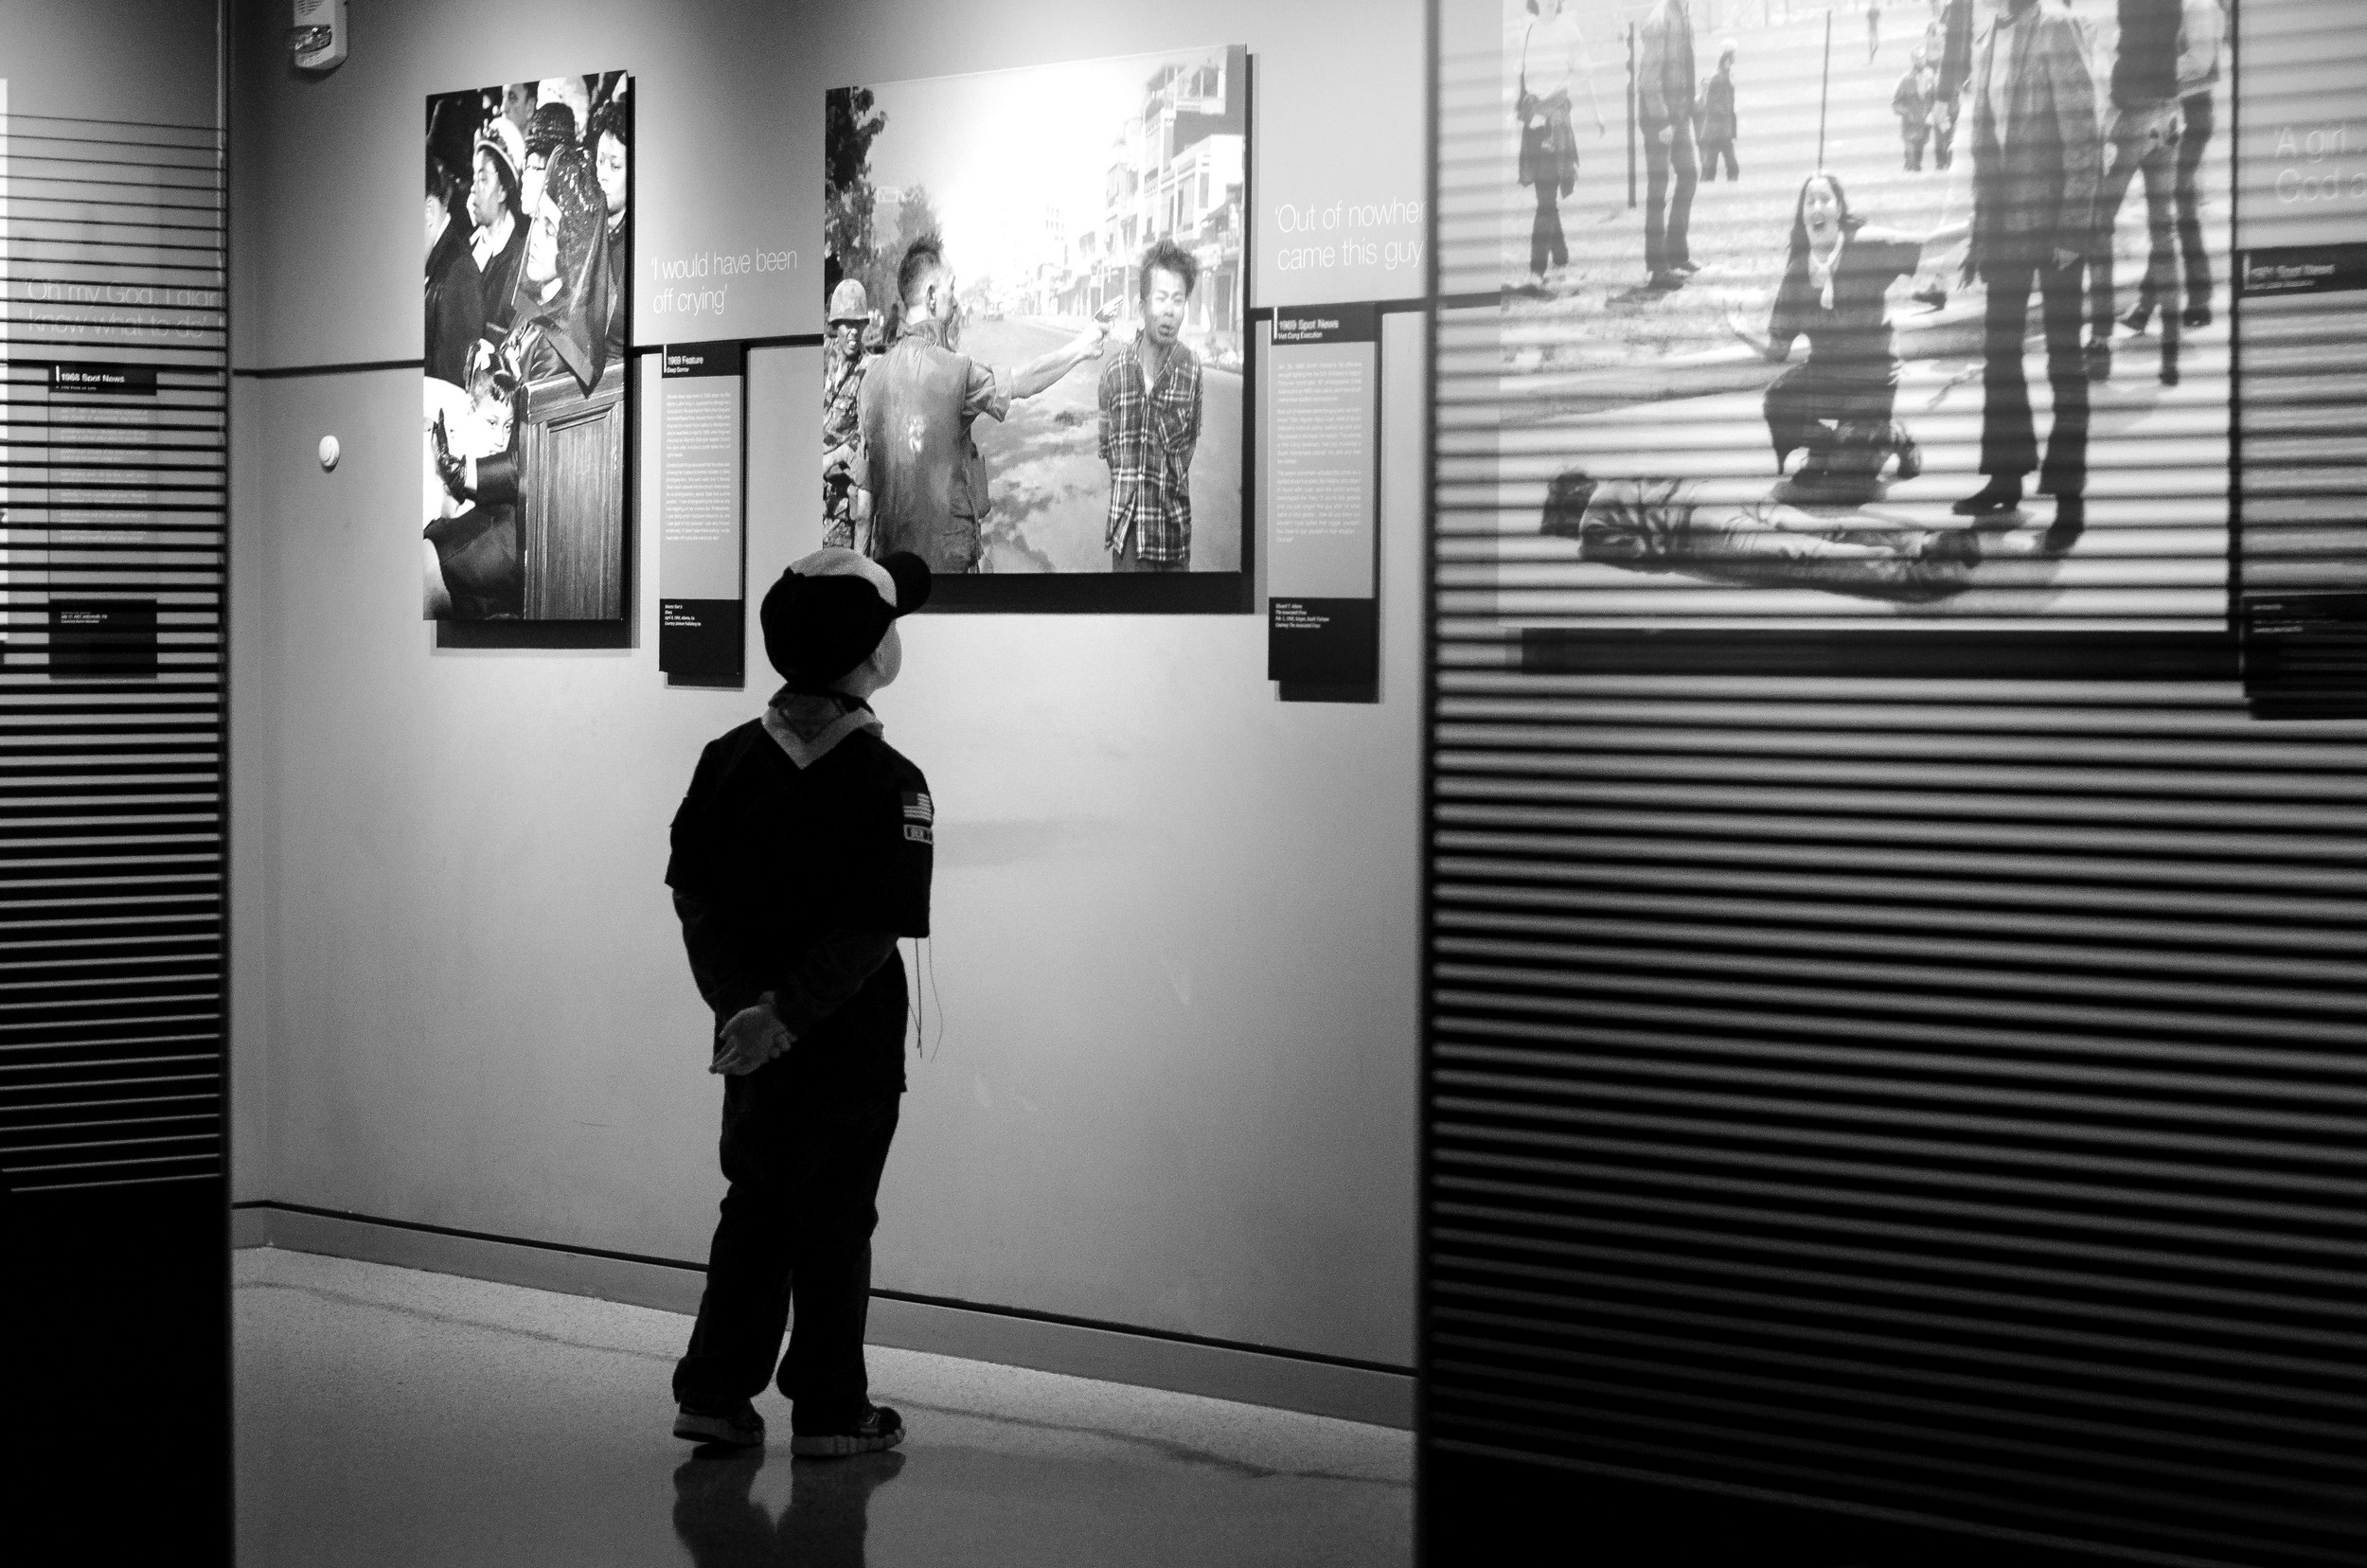 A Cub Scout looks up at a Pulitzer Prize winning image from the Kent State shooting at the Newseum in Washington, D.C.